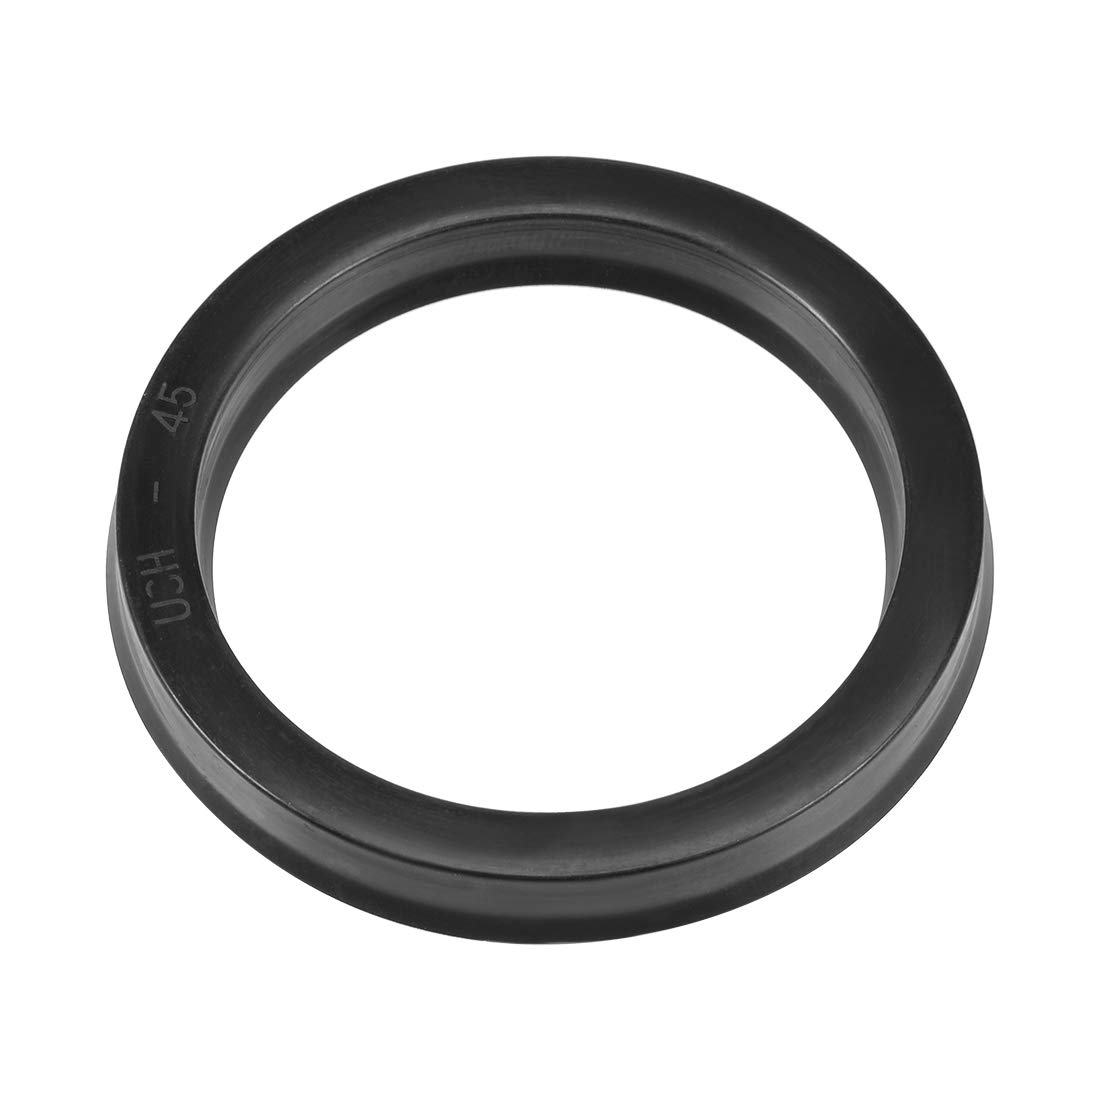 18mm x 26mm x 5mm Piston Shaft USH Oil Sealing O-Ring sourcing map Hydraulic Seal